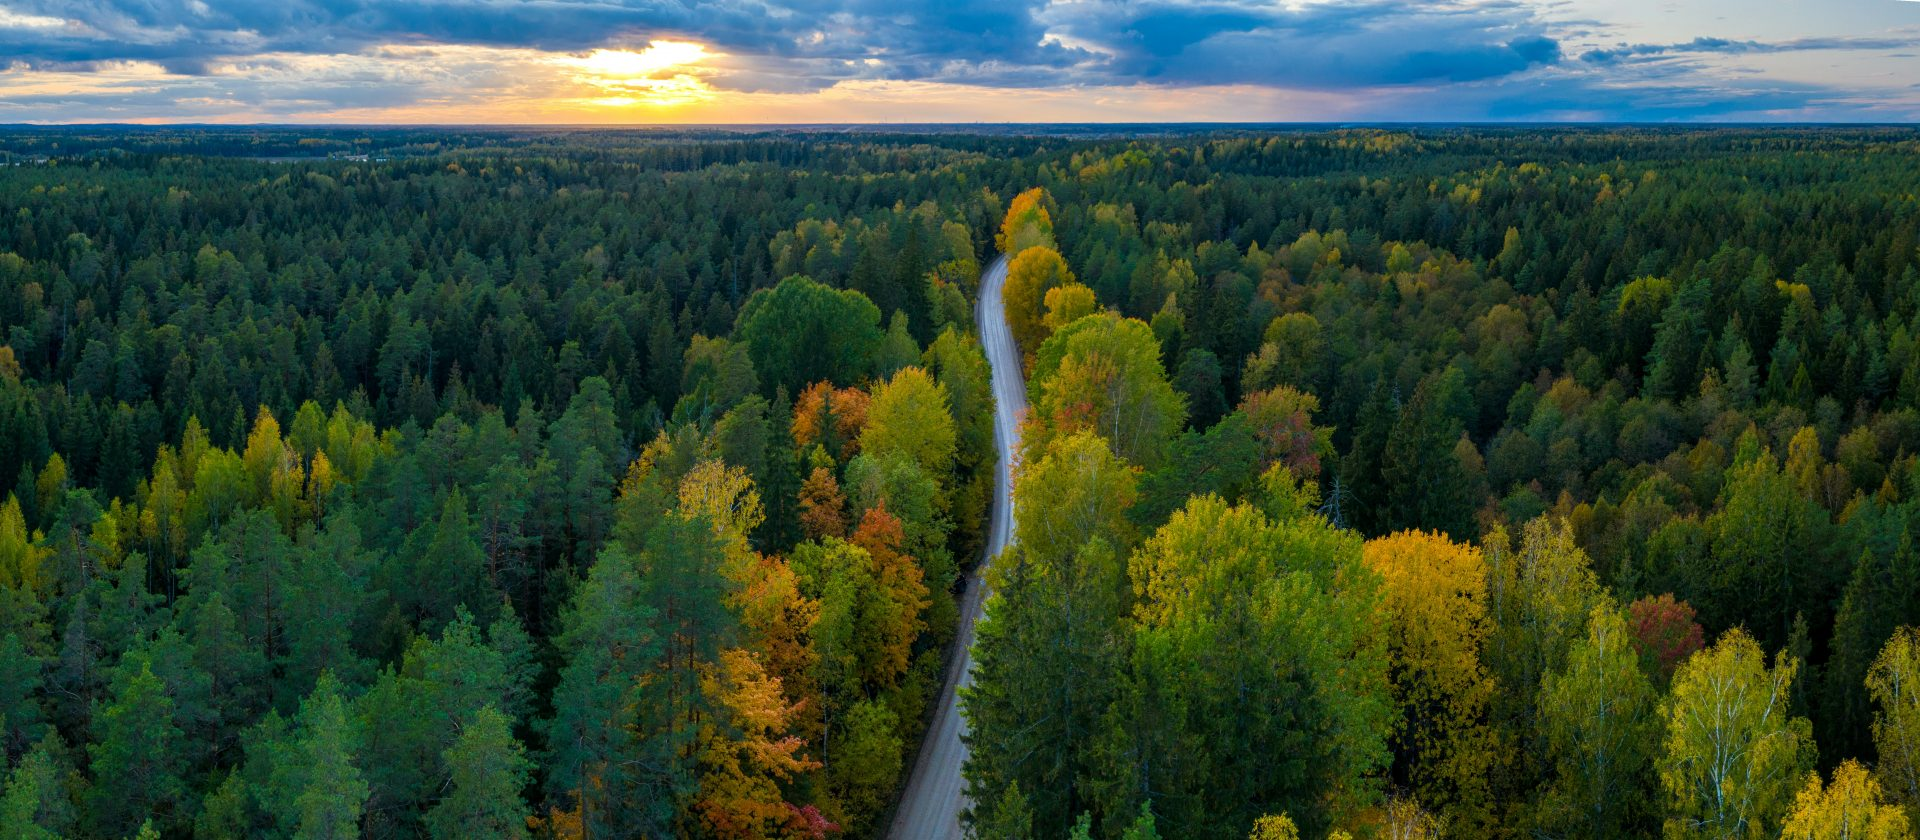 Panorama view of Latvian forest and road from above